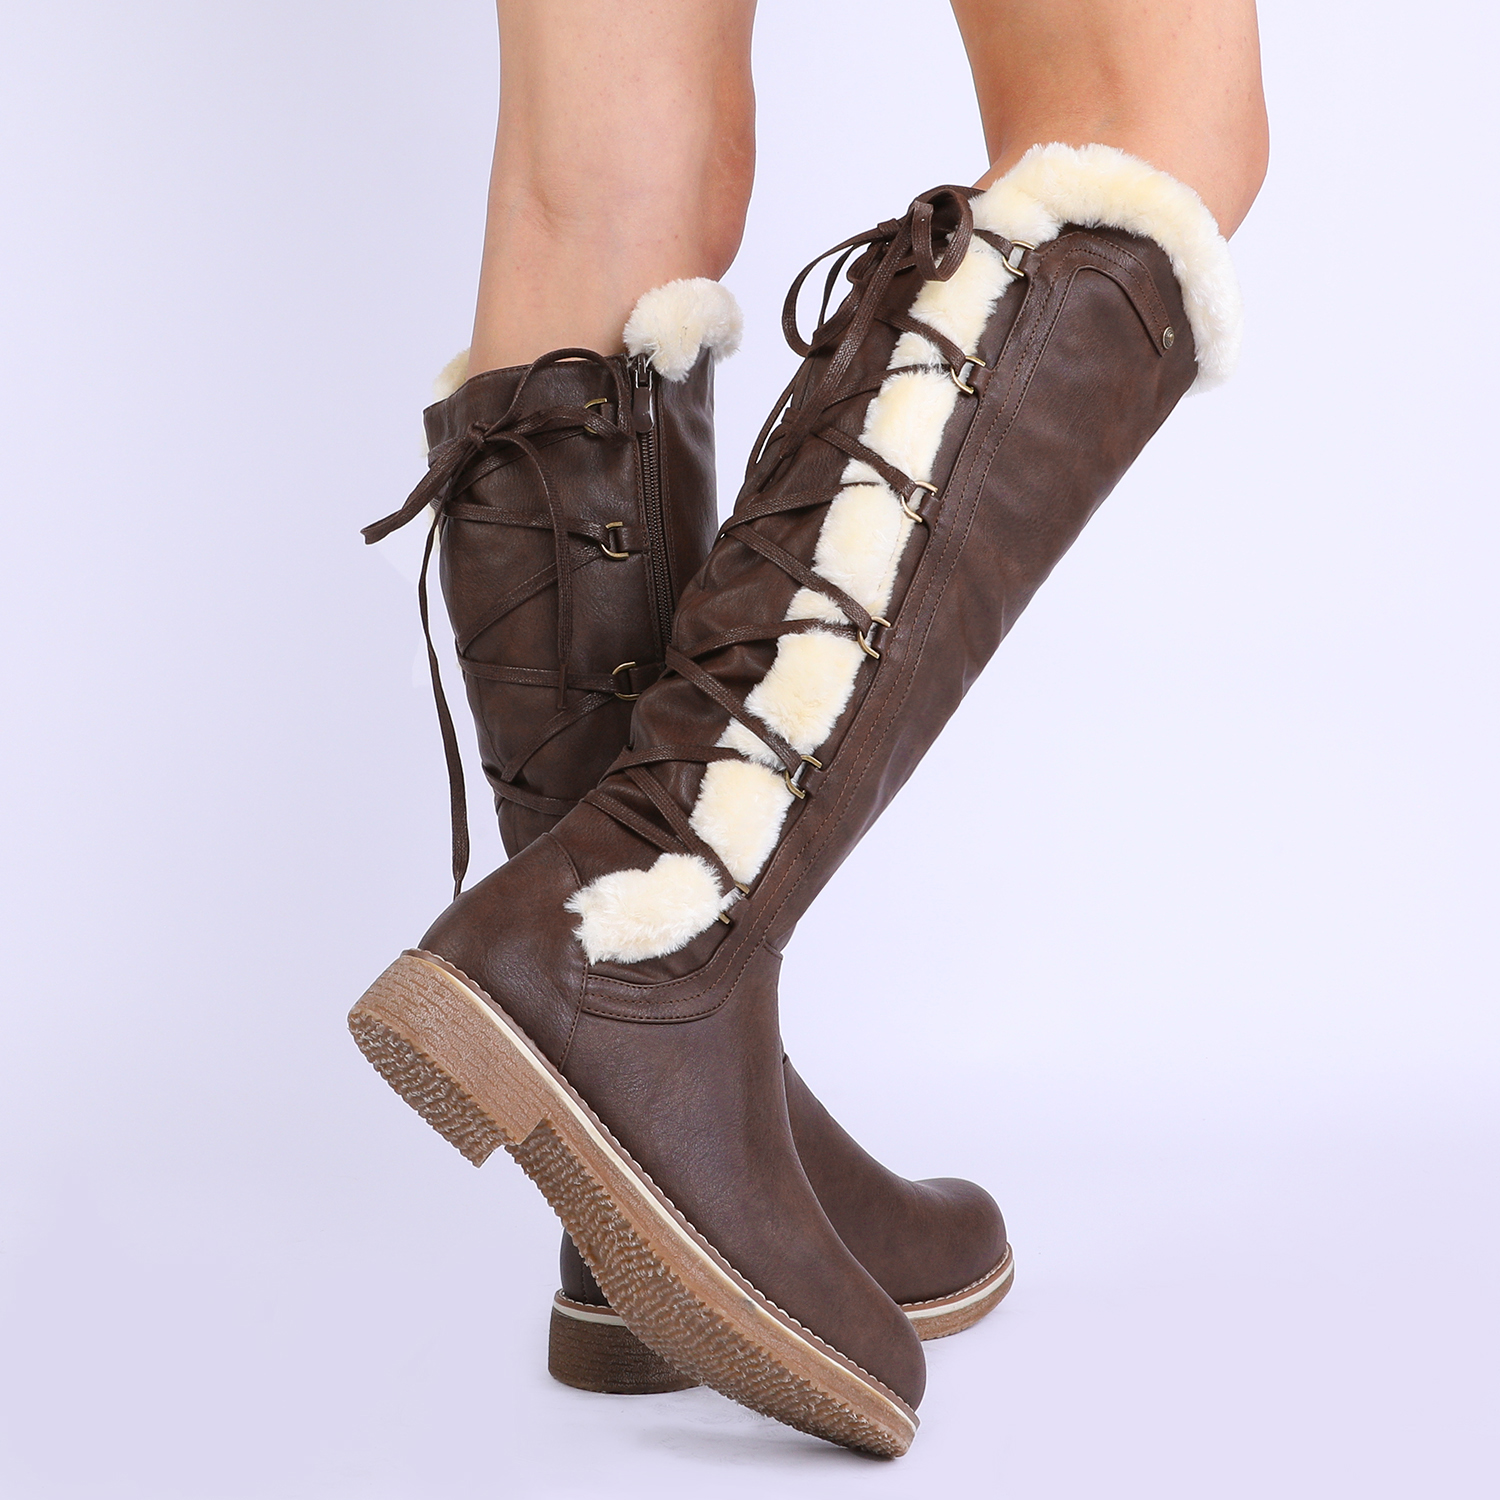 DREAM-PAIRS-Womens-Knee-High-Faux-Fur-Lined-Winter-Snow-Lace-Up-Zip-Combat-Boots thumbnail 13